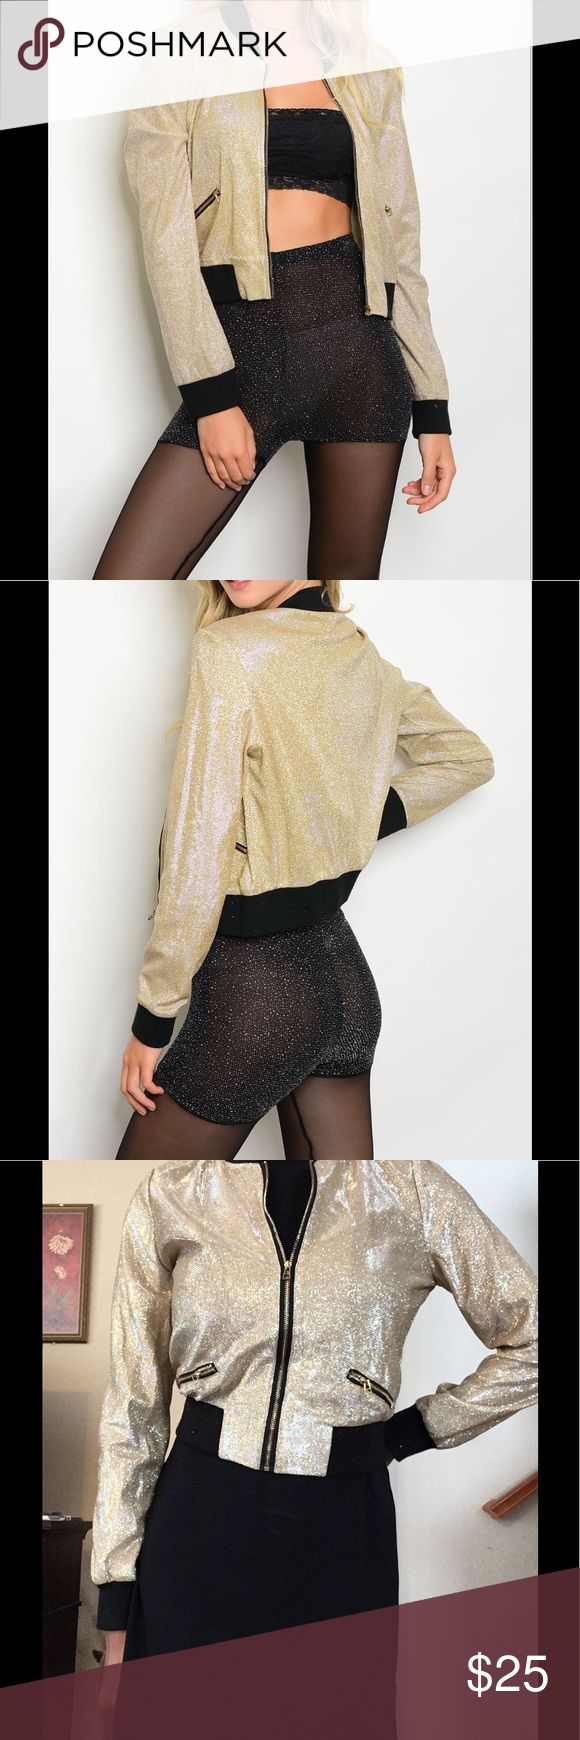 Sparkly Holiday Bomber Jacket Grab the 🥂 and go out for a night on the town in this sparkly number. This will be great for upcoming holiday parties or just to be a little flashy. This pairs well with dresses, skirts jeans, and would go nicely with the sparkly pumps also in my closet. Jackets & Coats